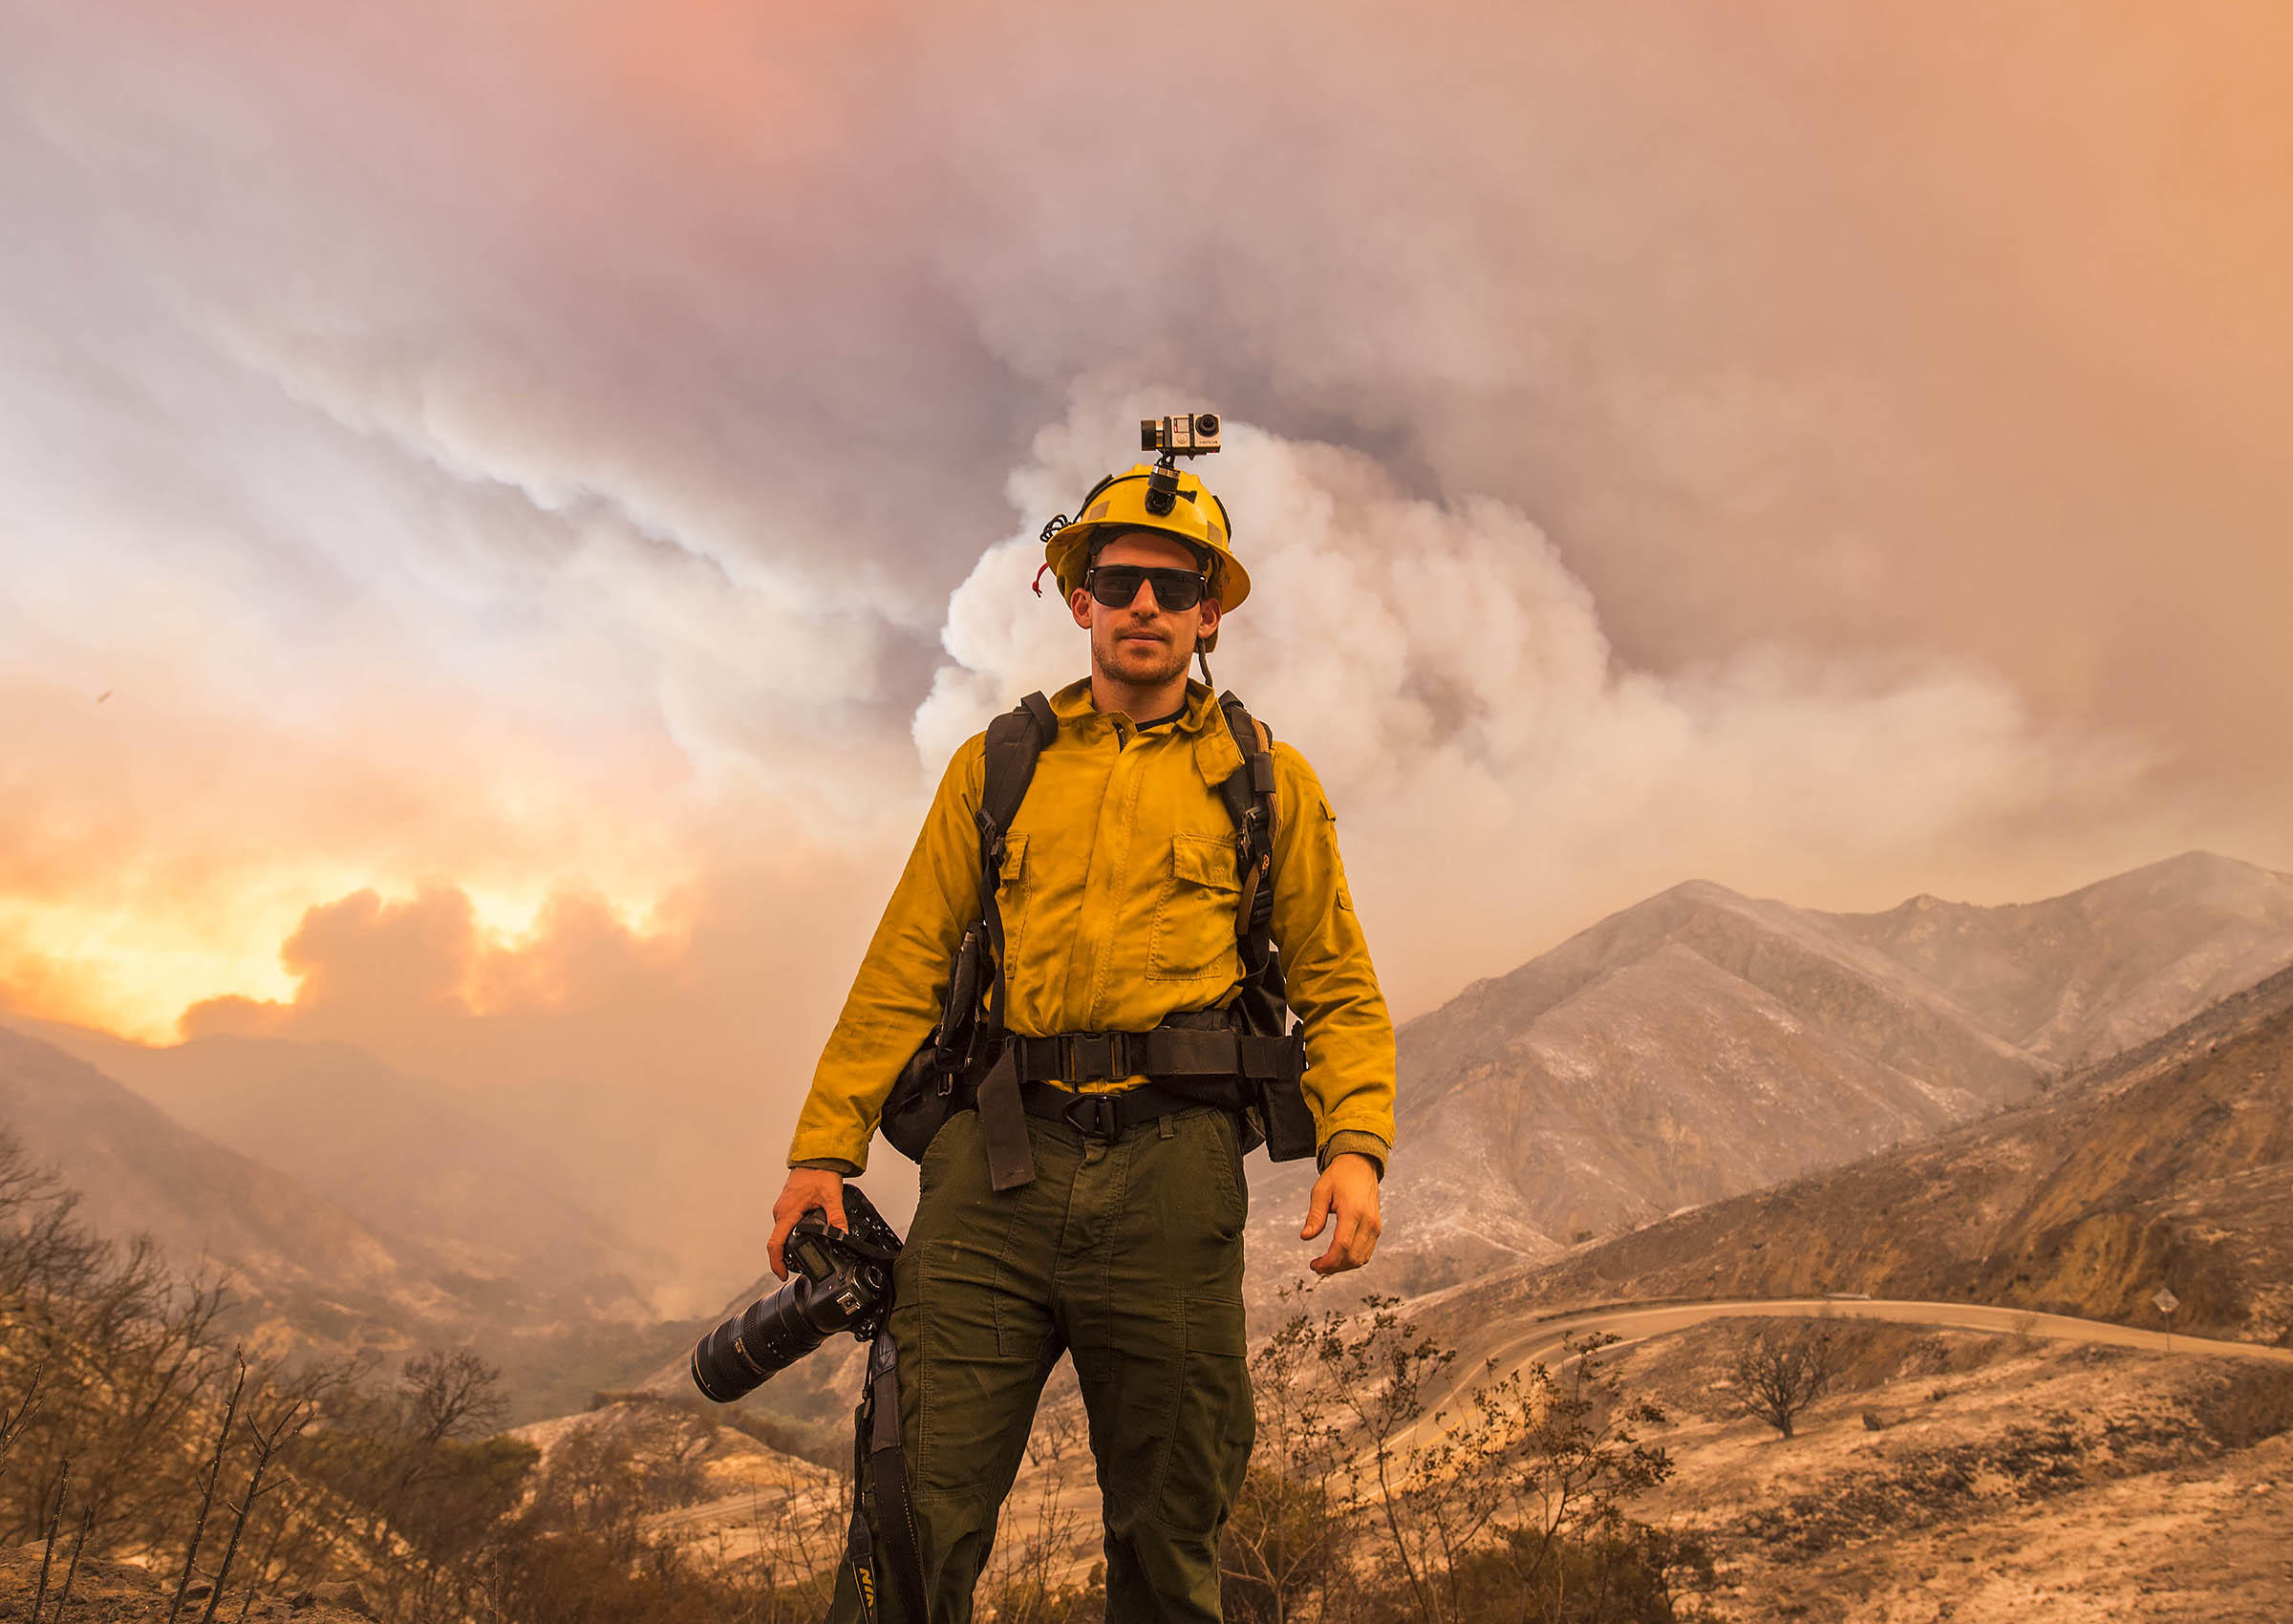 Stuart Palley, a professional wildfire photographer standing in the Angeles National Forest, believes mirrorless cameras will replace conventional SLRs.